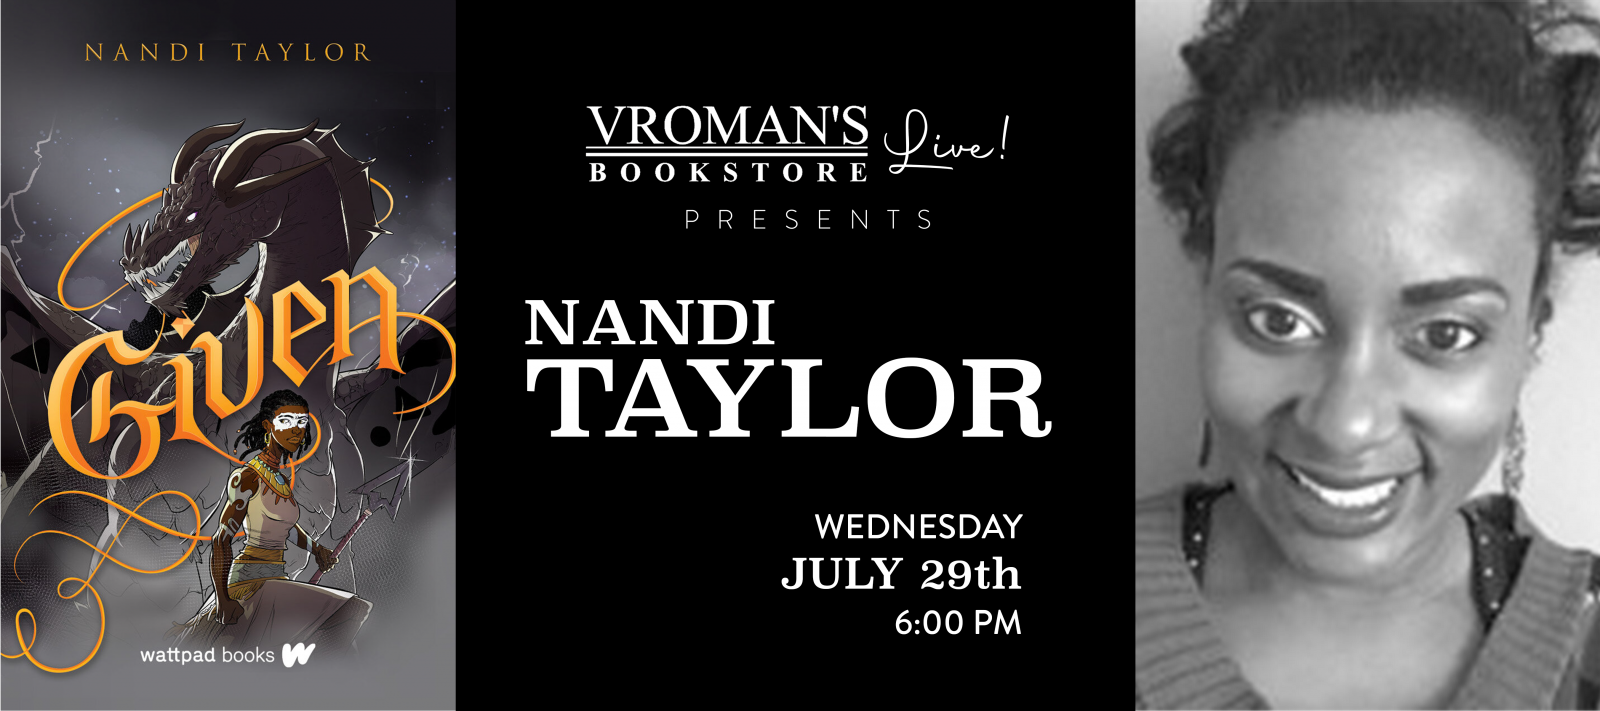 Vroman's Live present Nandi Taylor on Wednesday on July 29th at 6pm